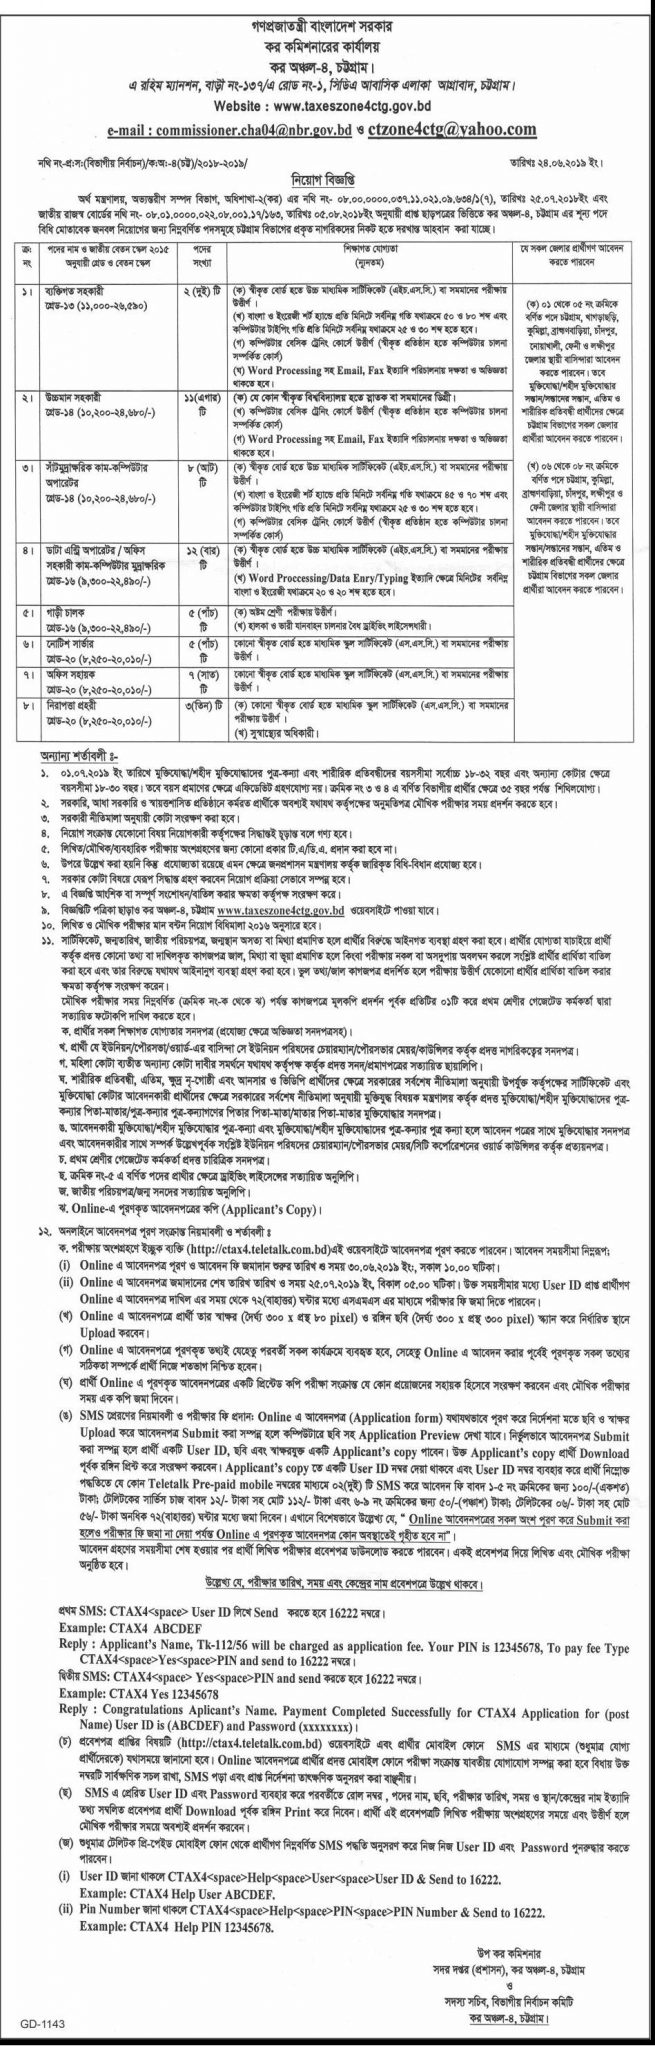 Tax Commissioners Office Jobs Circular 2019